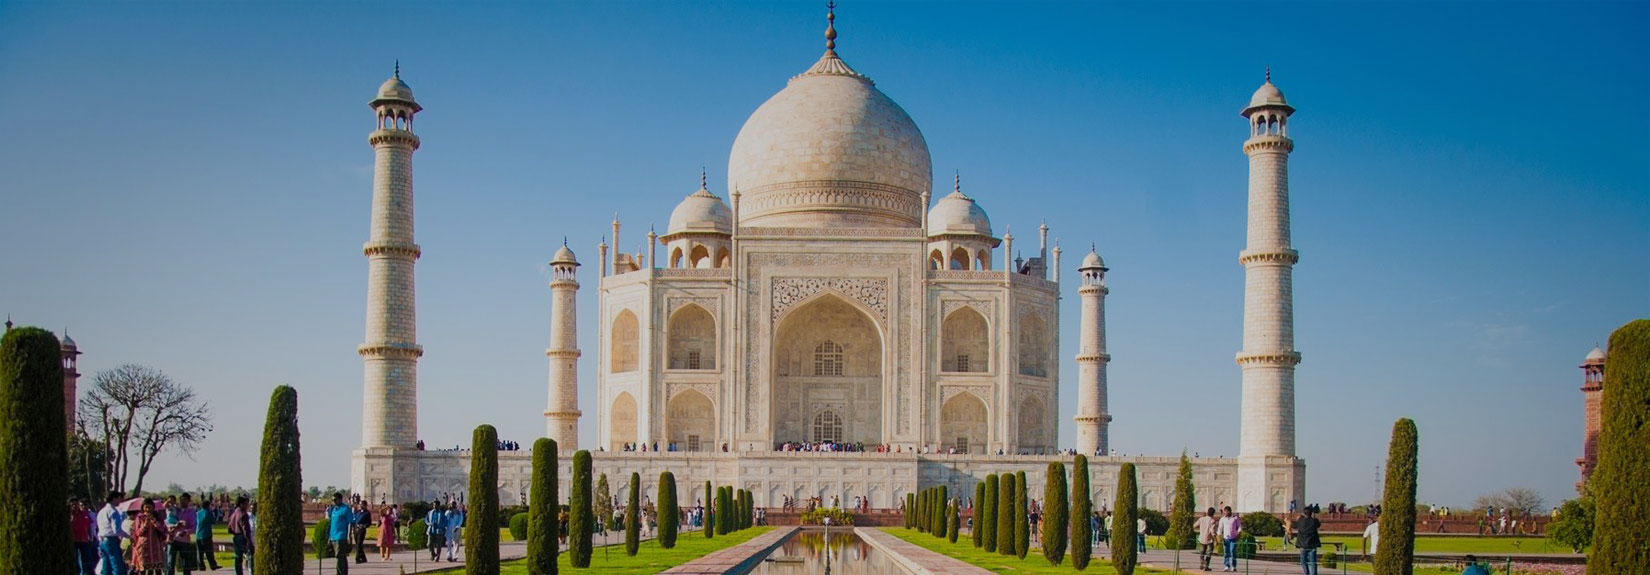 A Complete destination management tour Operator Company & Travel agency Specialized in Delhi Agra Tour, Taj Mahal Tour (from Delhi to Agra tour), Golden Triangle India Tour and Budget Rajasthan Tour Packages.